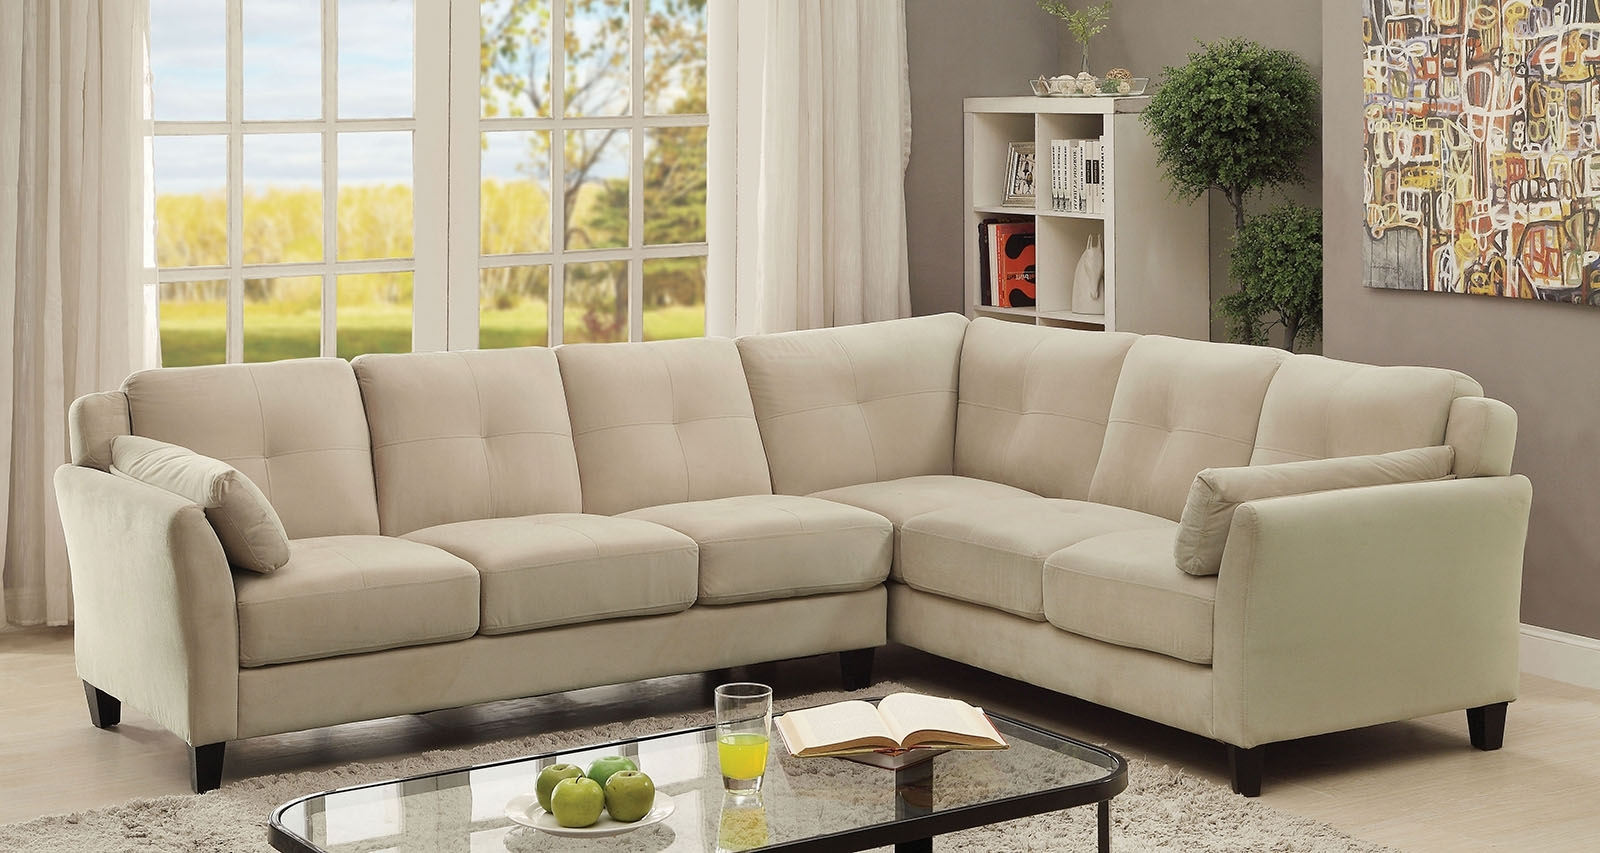 Andrew's Furniture And Mattress Throughout Fashionable Nh Sectional Sofas (View 5 of 15)